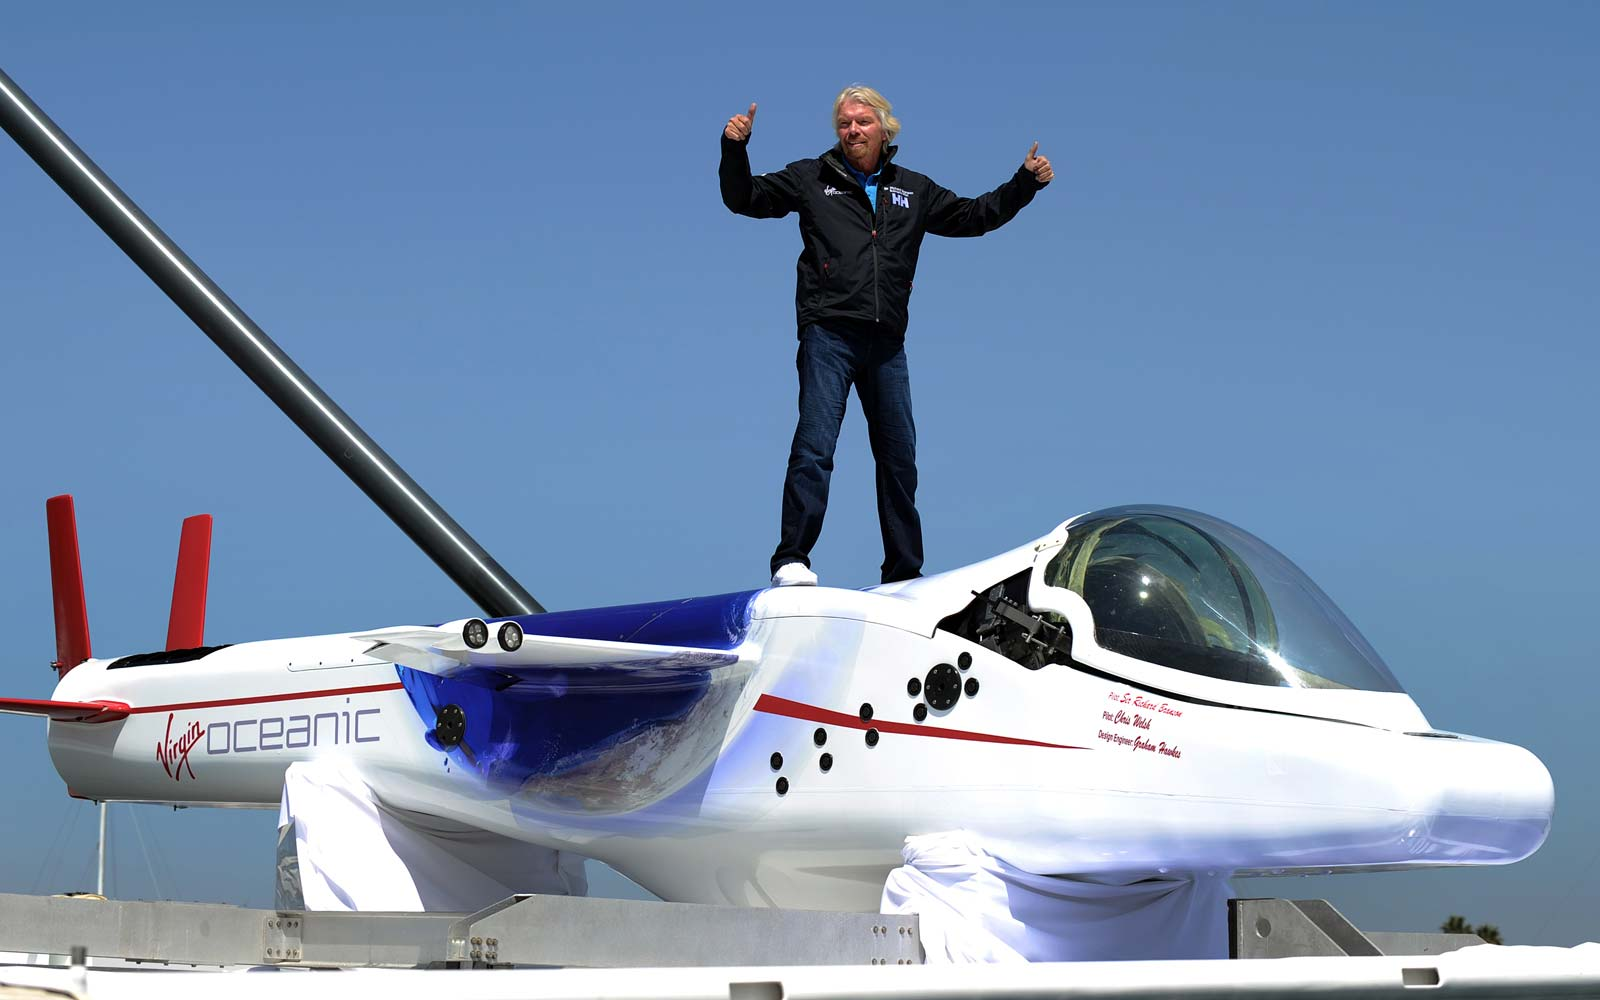 Sir Richard Branson attends a press conference in Newport Beach, California on April 5, 2011 to announce plans to take a solo piloted submarine to the deepest points in each of the wolrd's five oceans